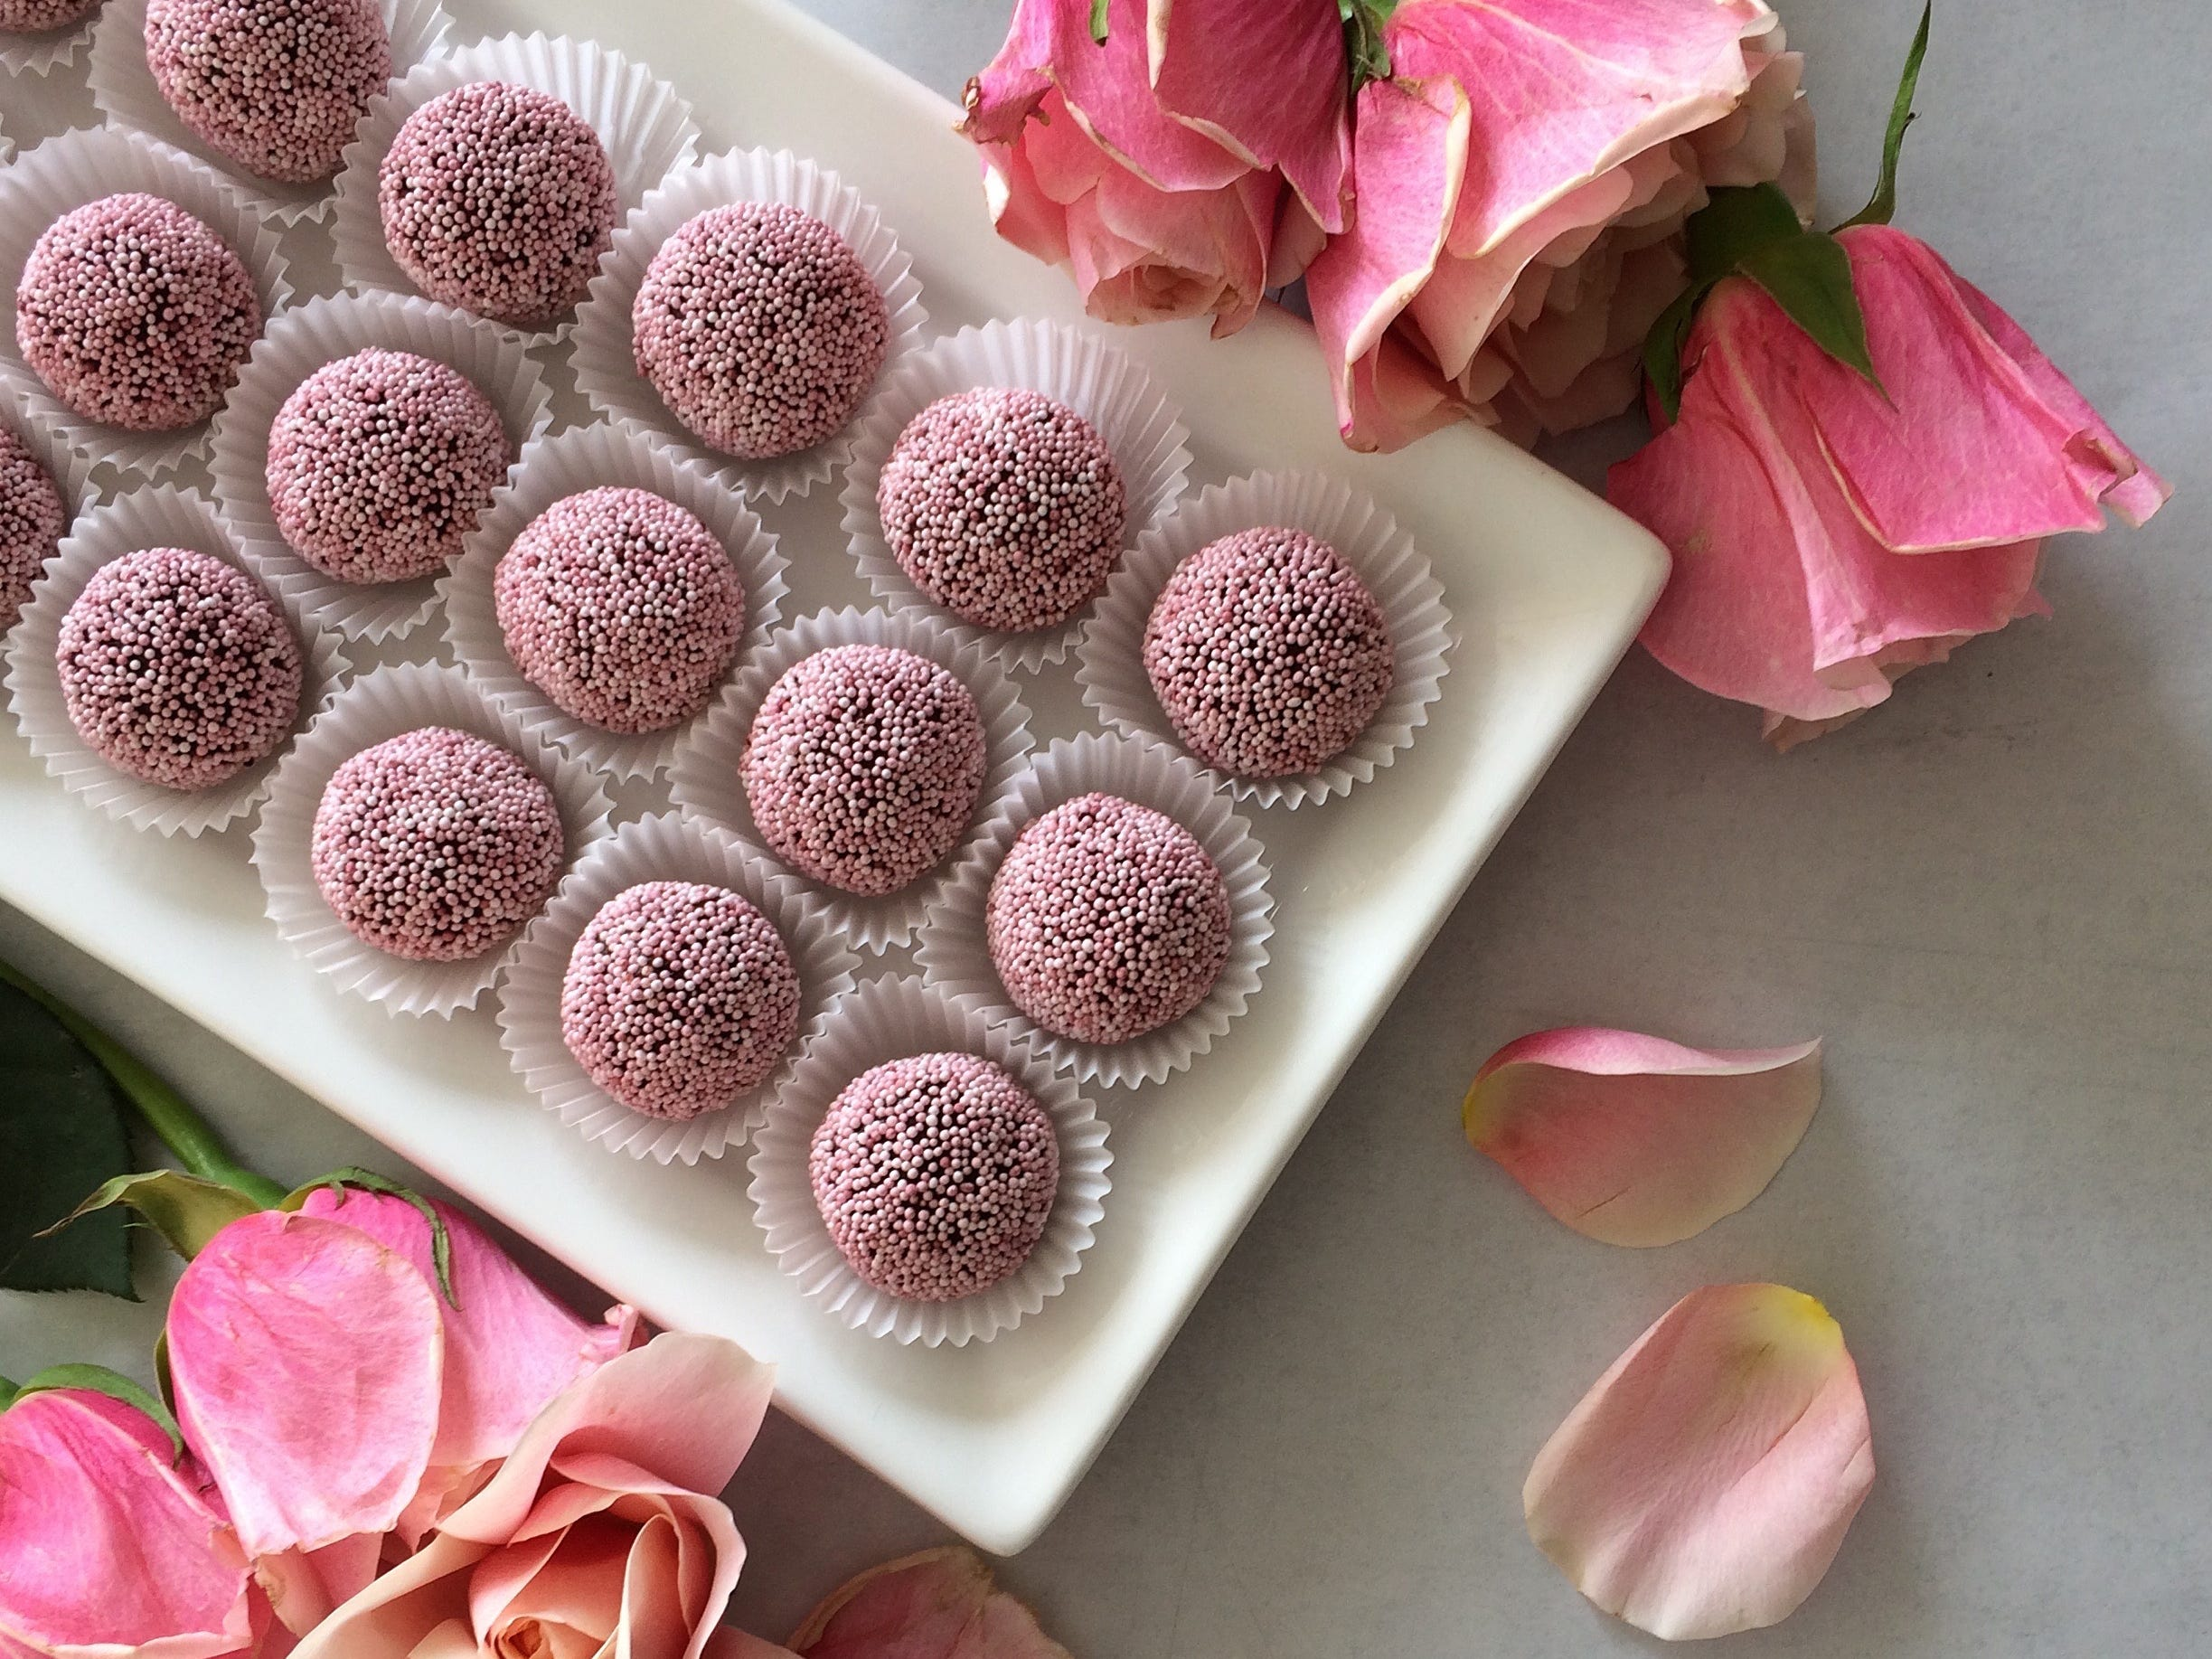 Chocolate cherry truffles are included in Cupid's Candy Boxes at The Flaky Tart in Atlantic Highlands.